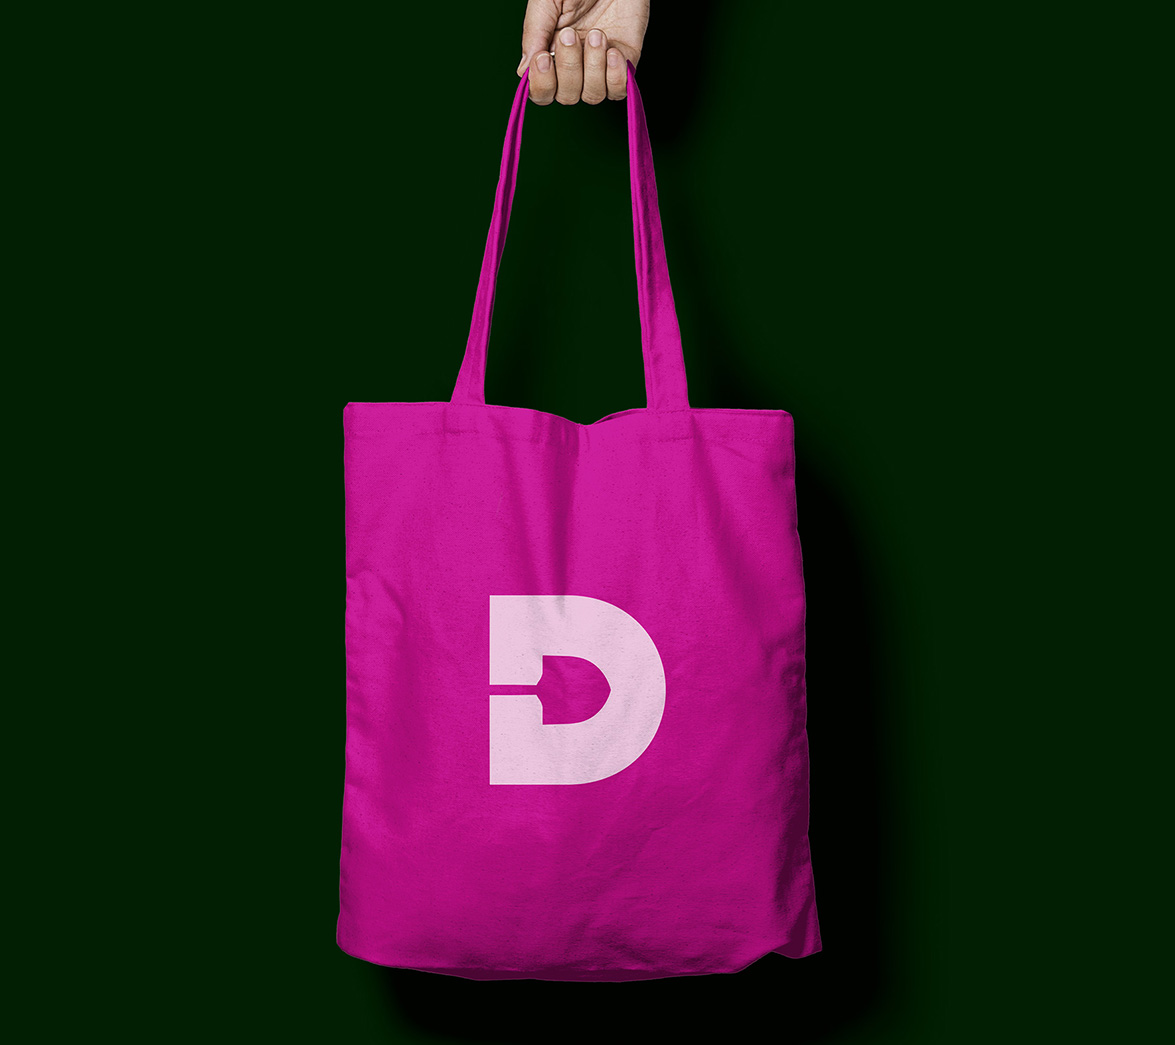 Tote bag design for food brand Donnelly, designed by White Bear Studio